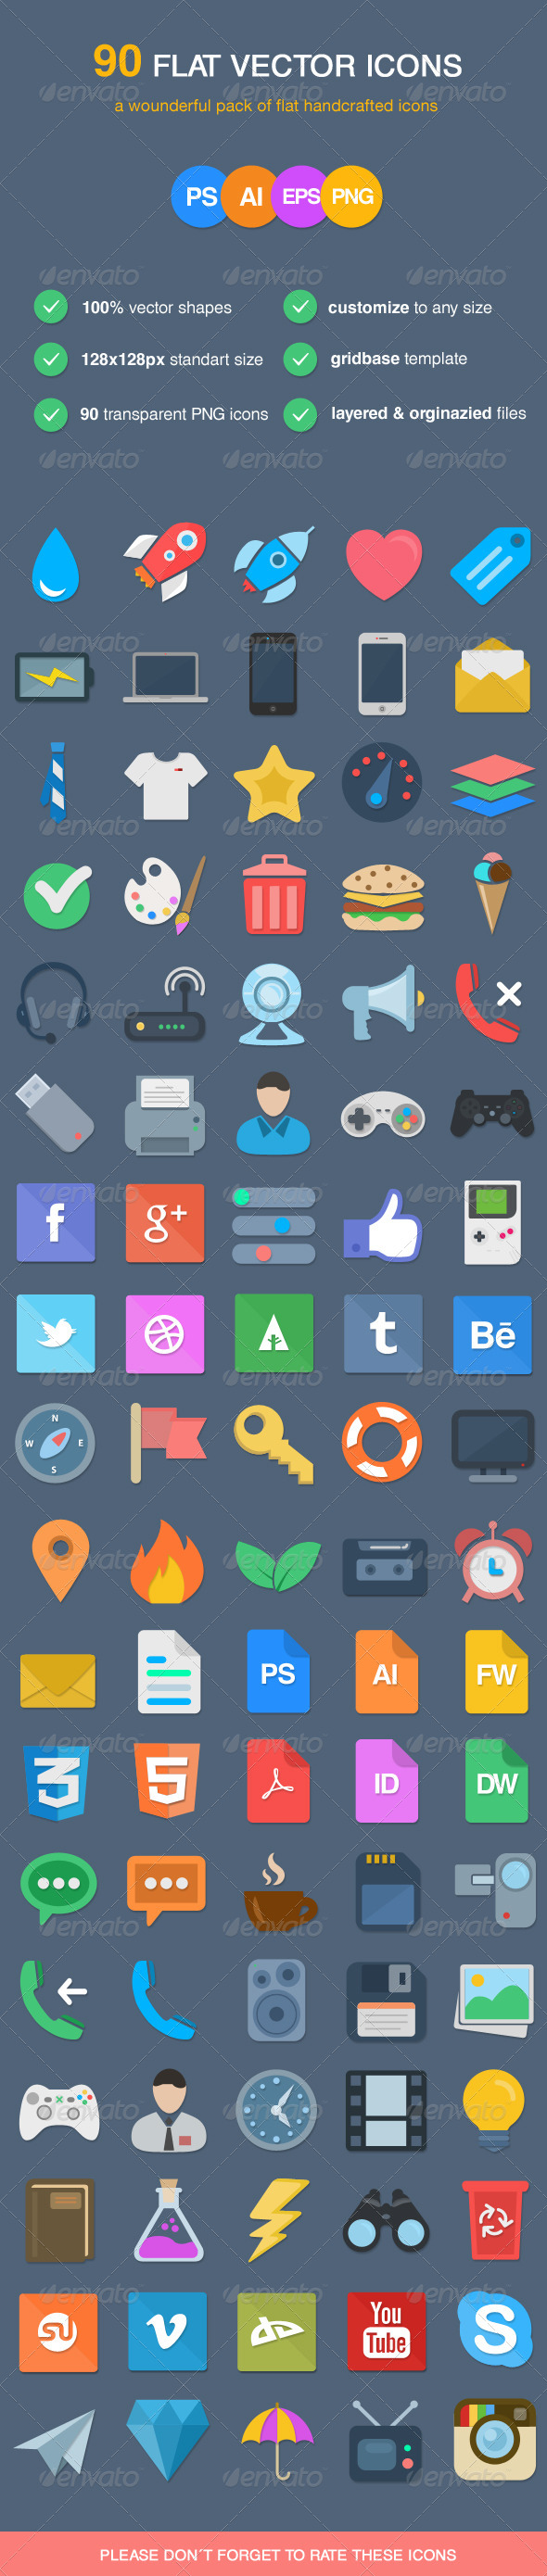 GraphicRiver 90 Flat Vector Icons 6685483